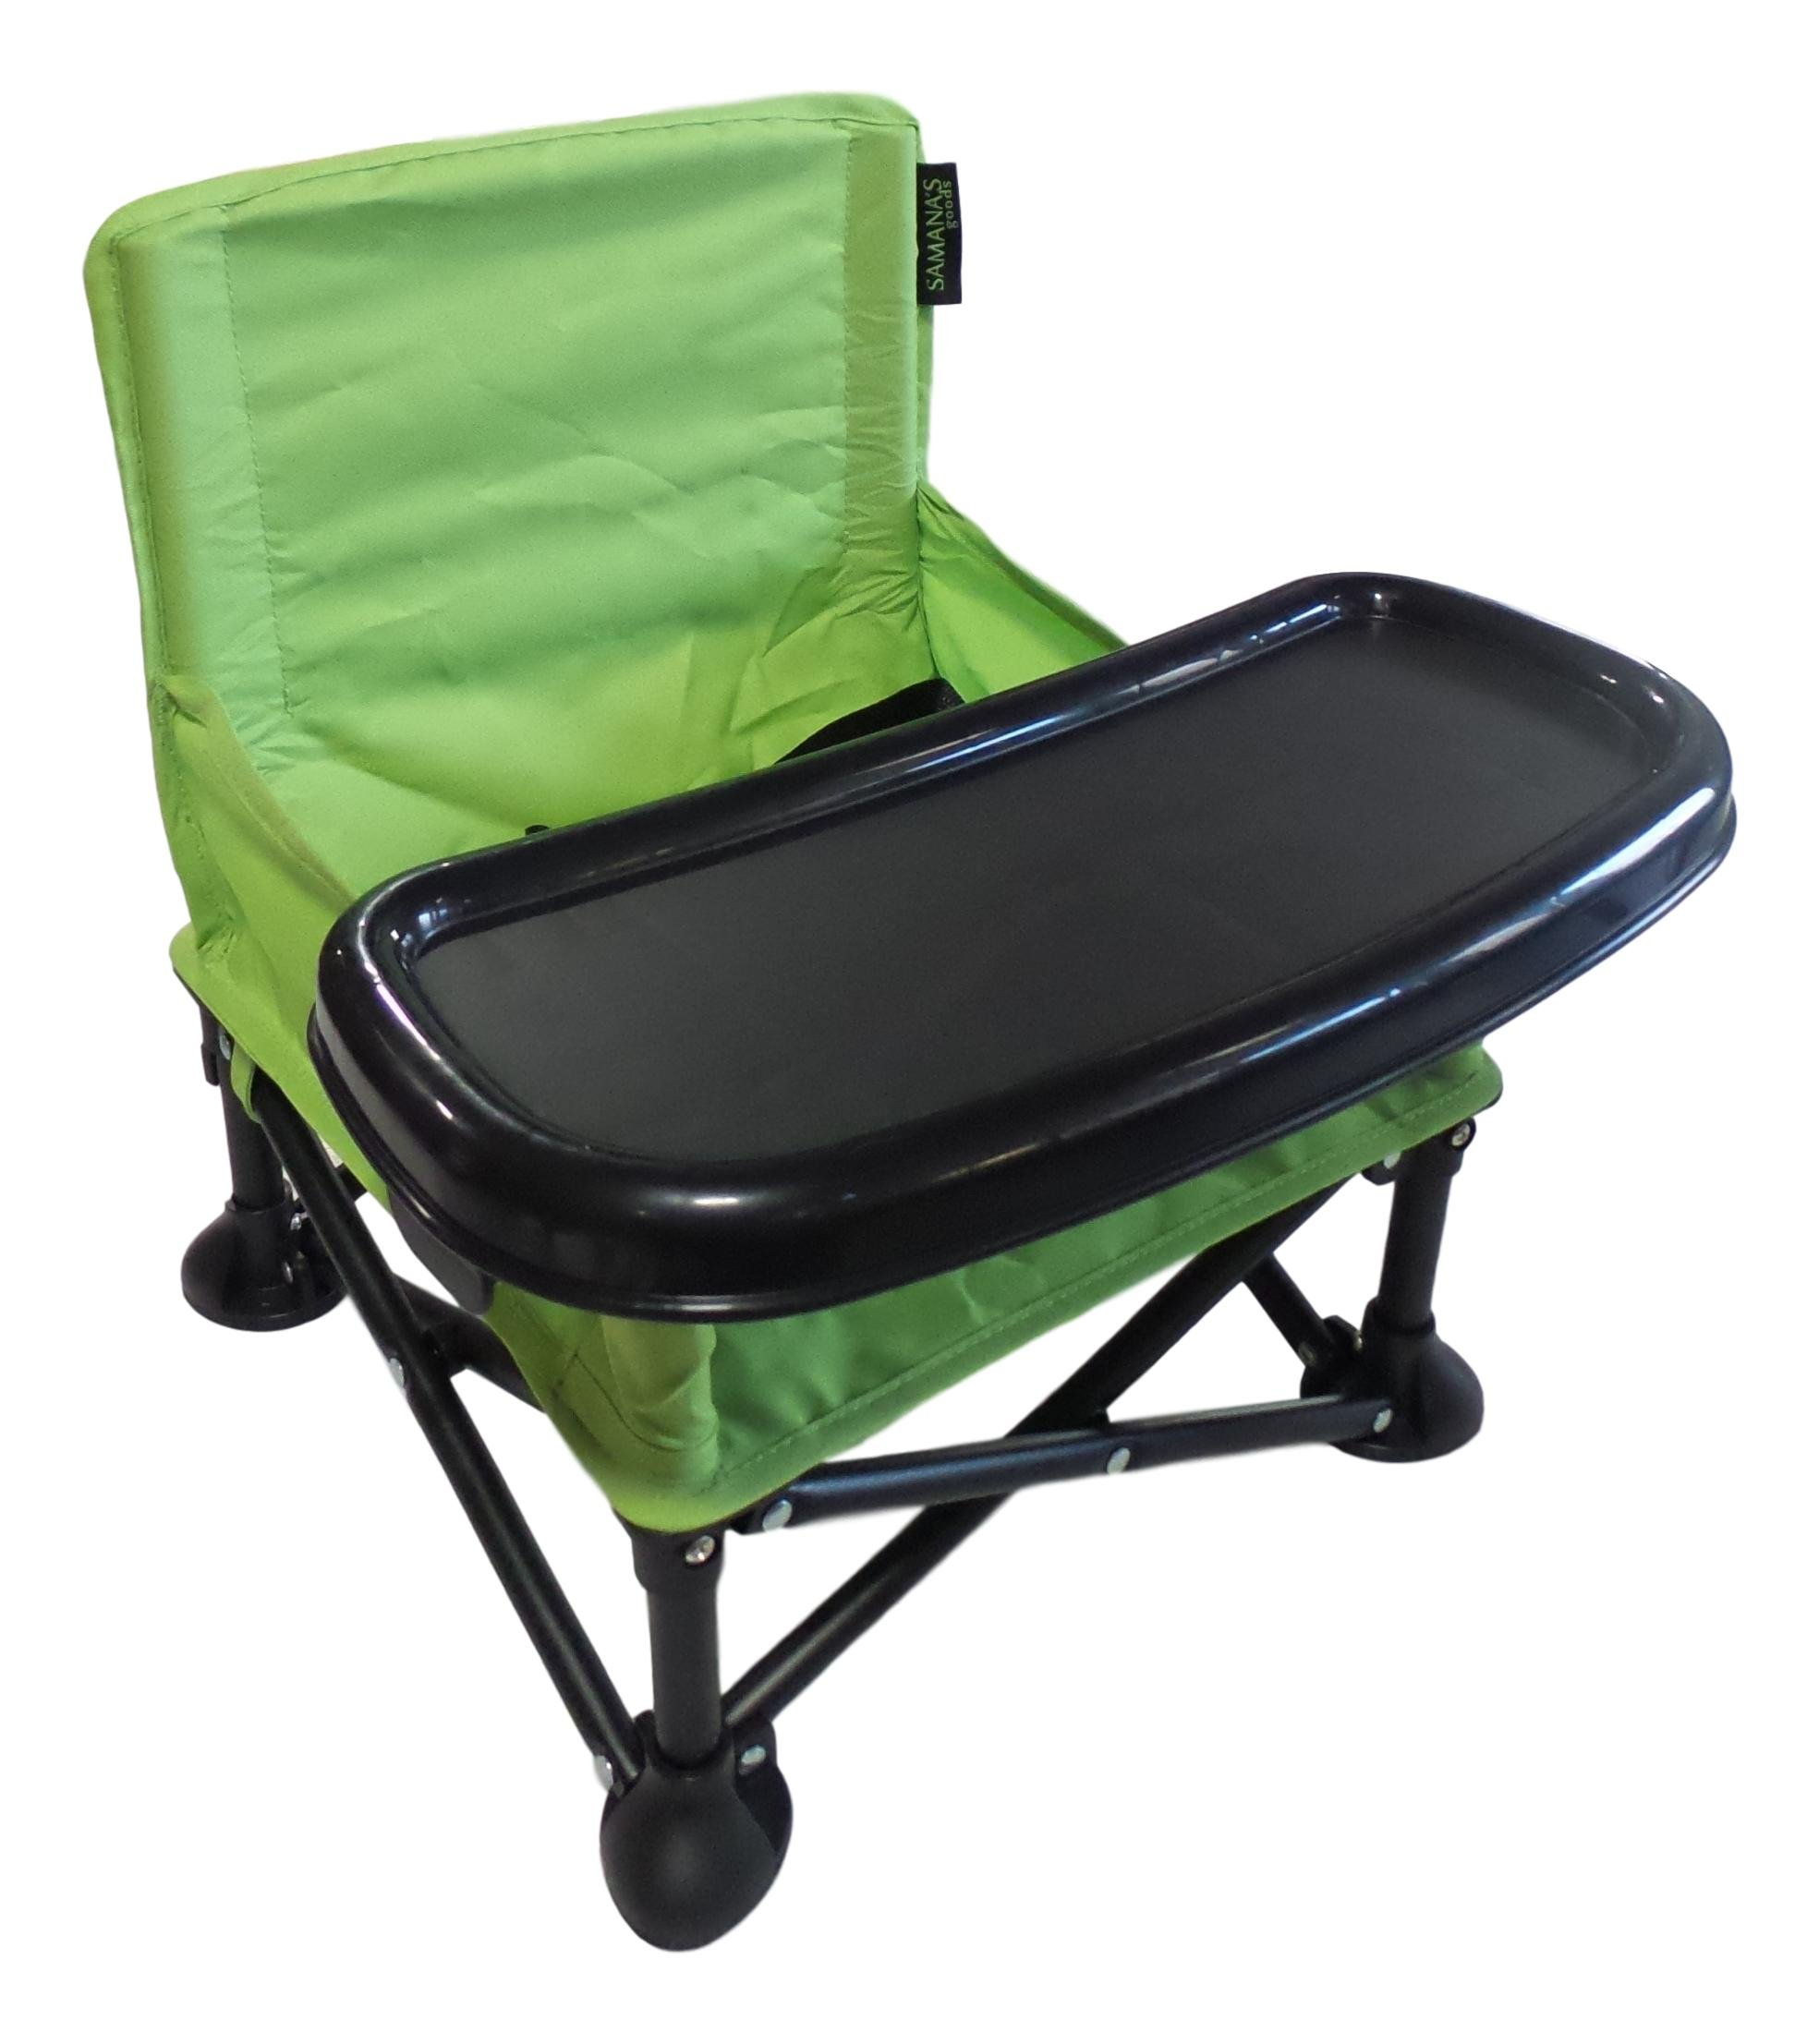 Portable Baby Booster Seat Folding Baby Chair with Tray and Carrying Bag Green  sc 1 st  eBay & Green Portable Baby Booster Seat Folding Baby Chair w/ Tray and ...